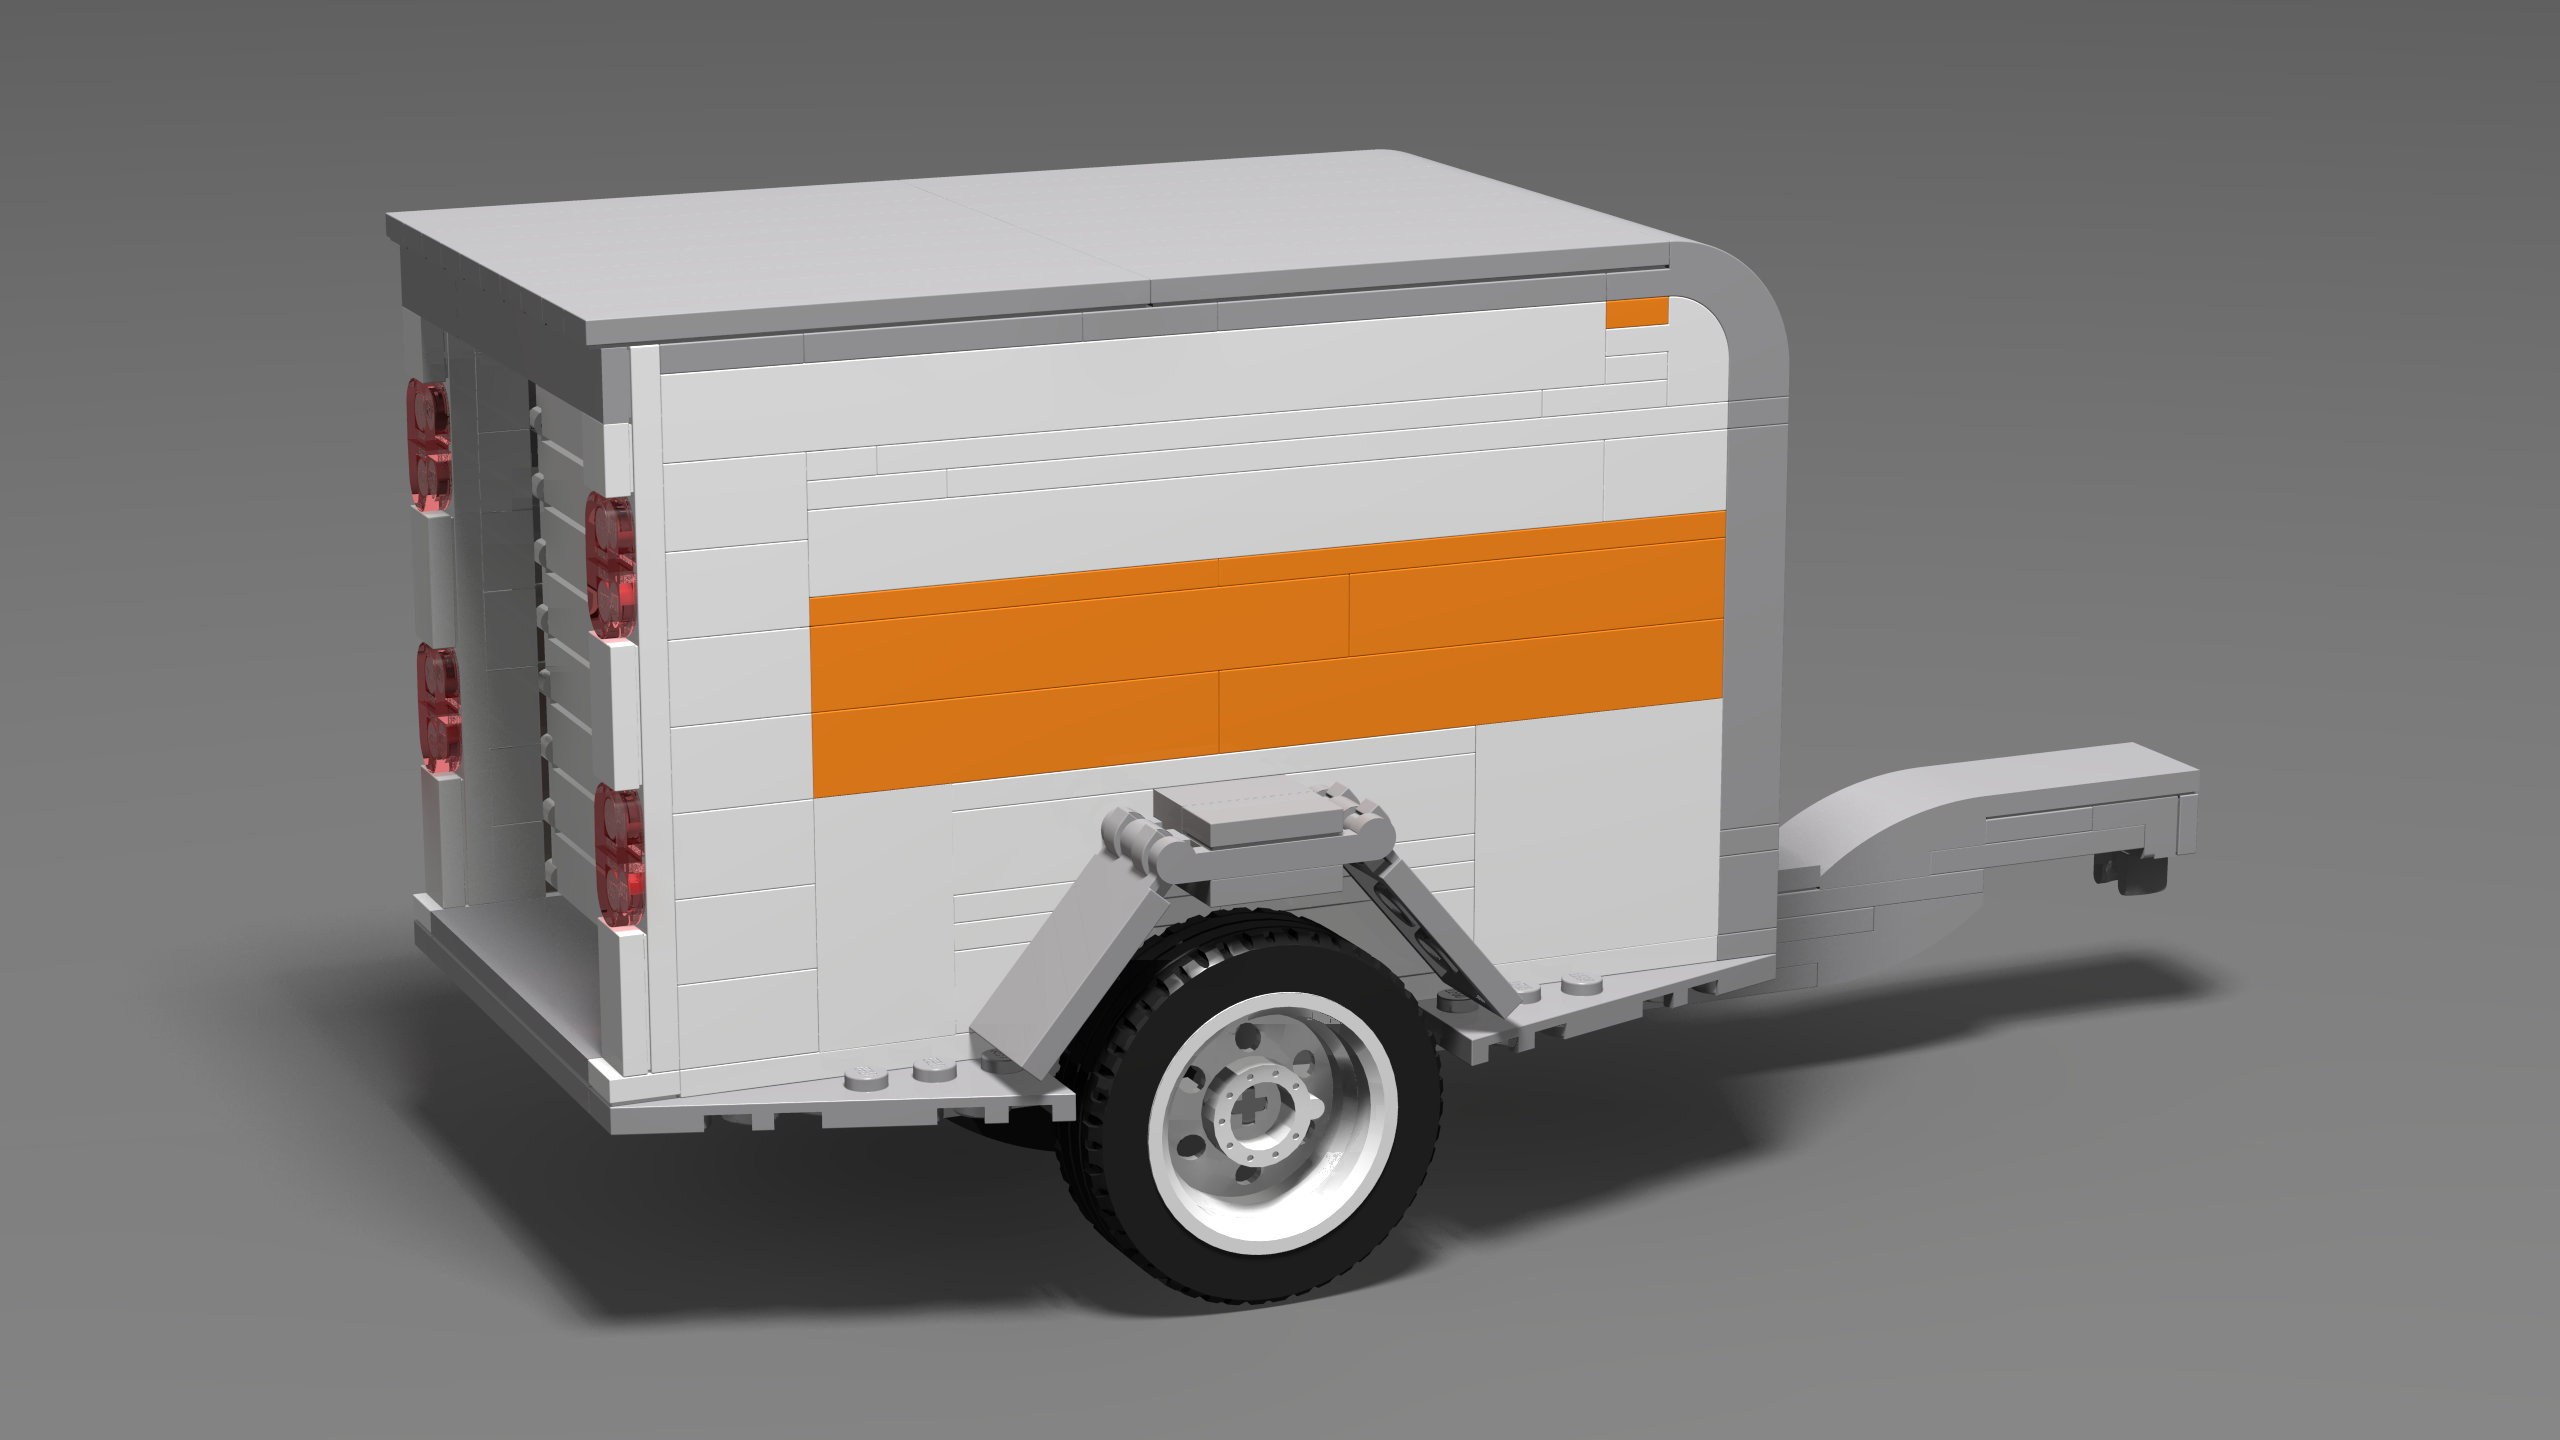 u-haul_trailer_mt_scale_3.jpg